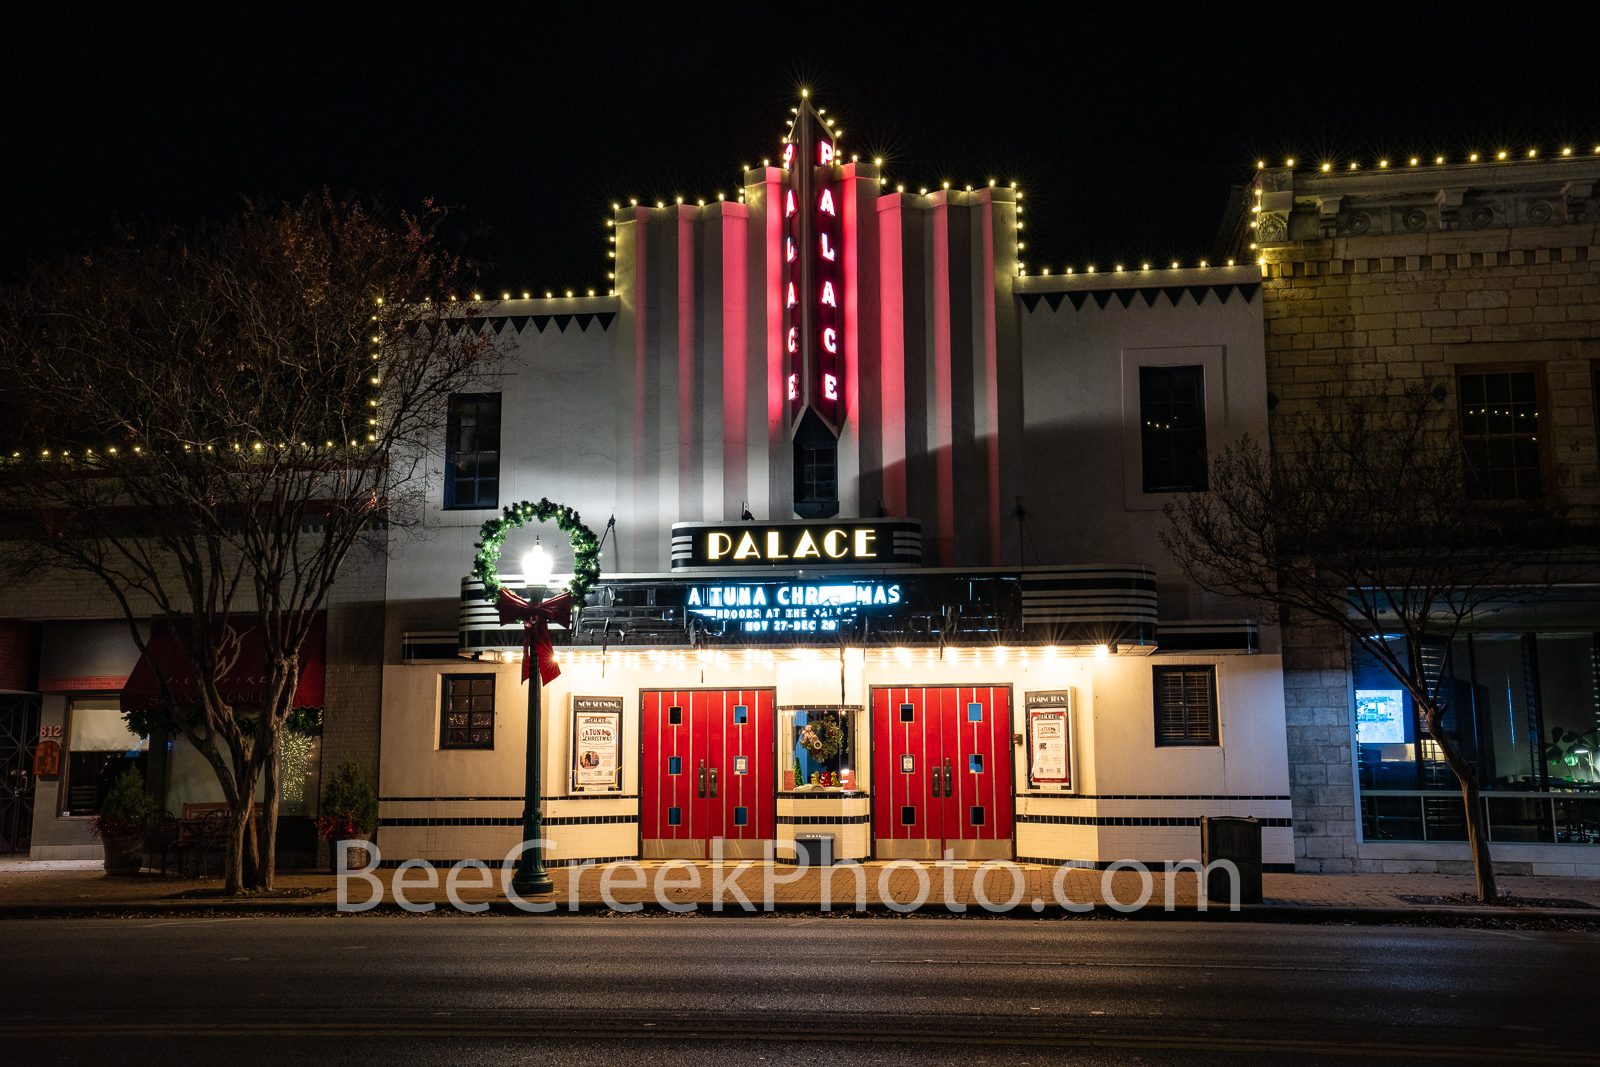 Georgetown Palace Theater - We captured this image of the Georgetown Palace Theater with the marque adverstising the Christmas...